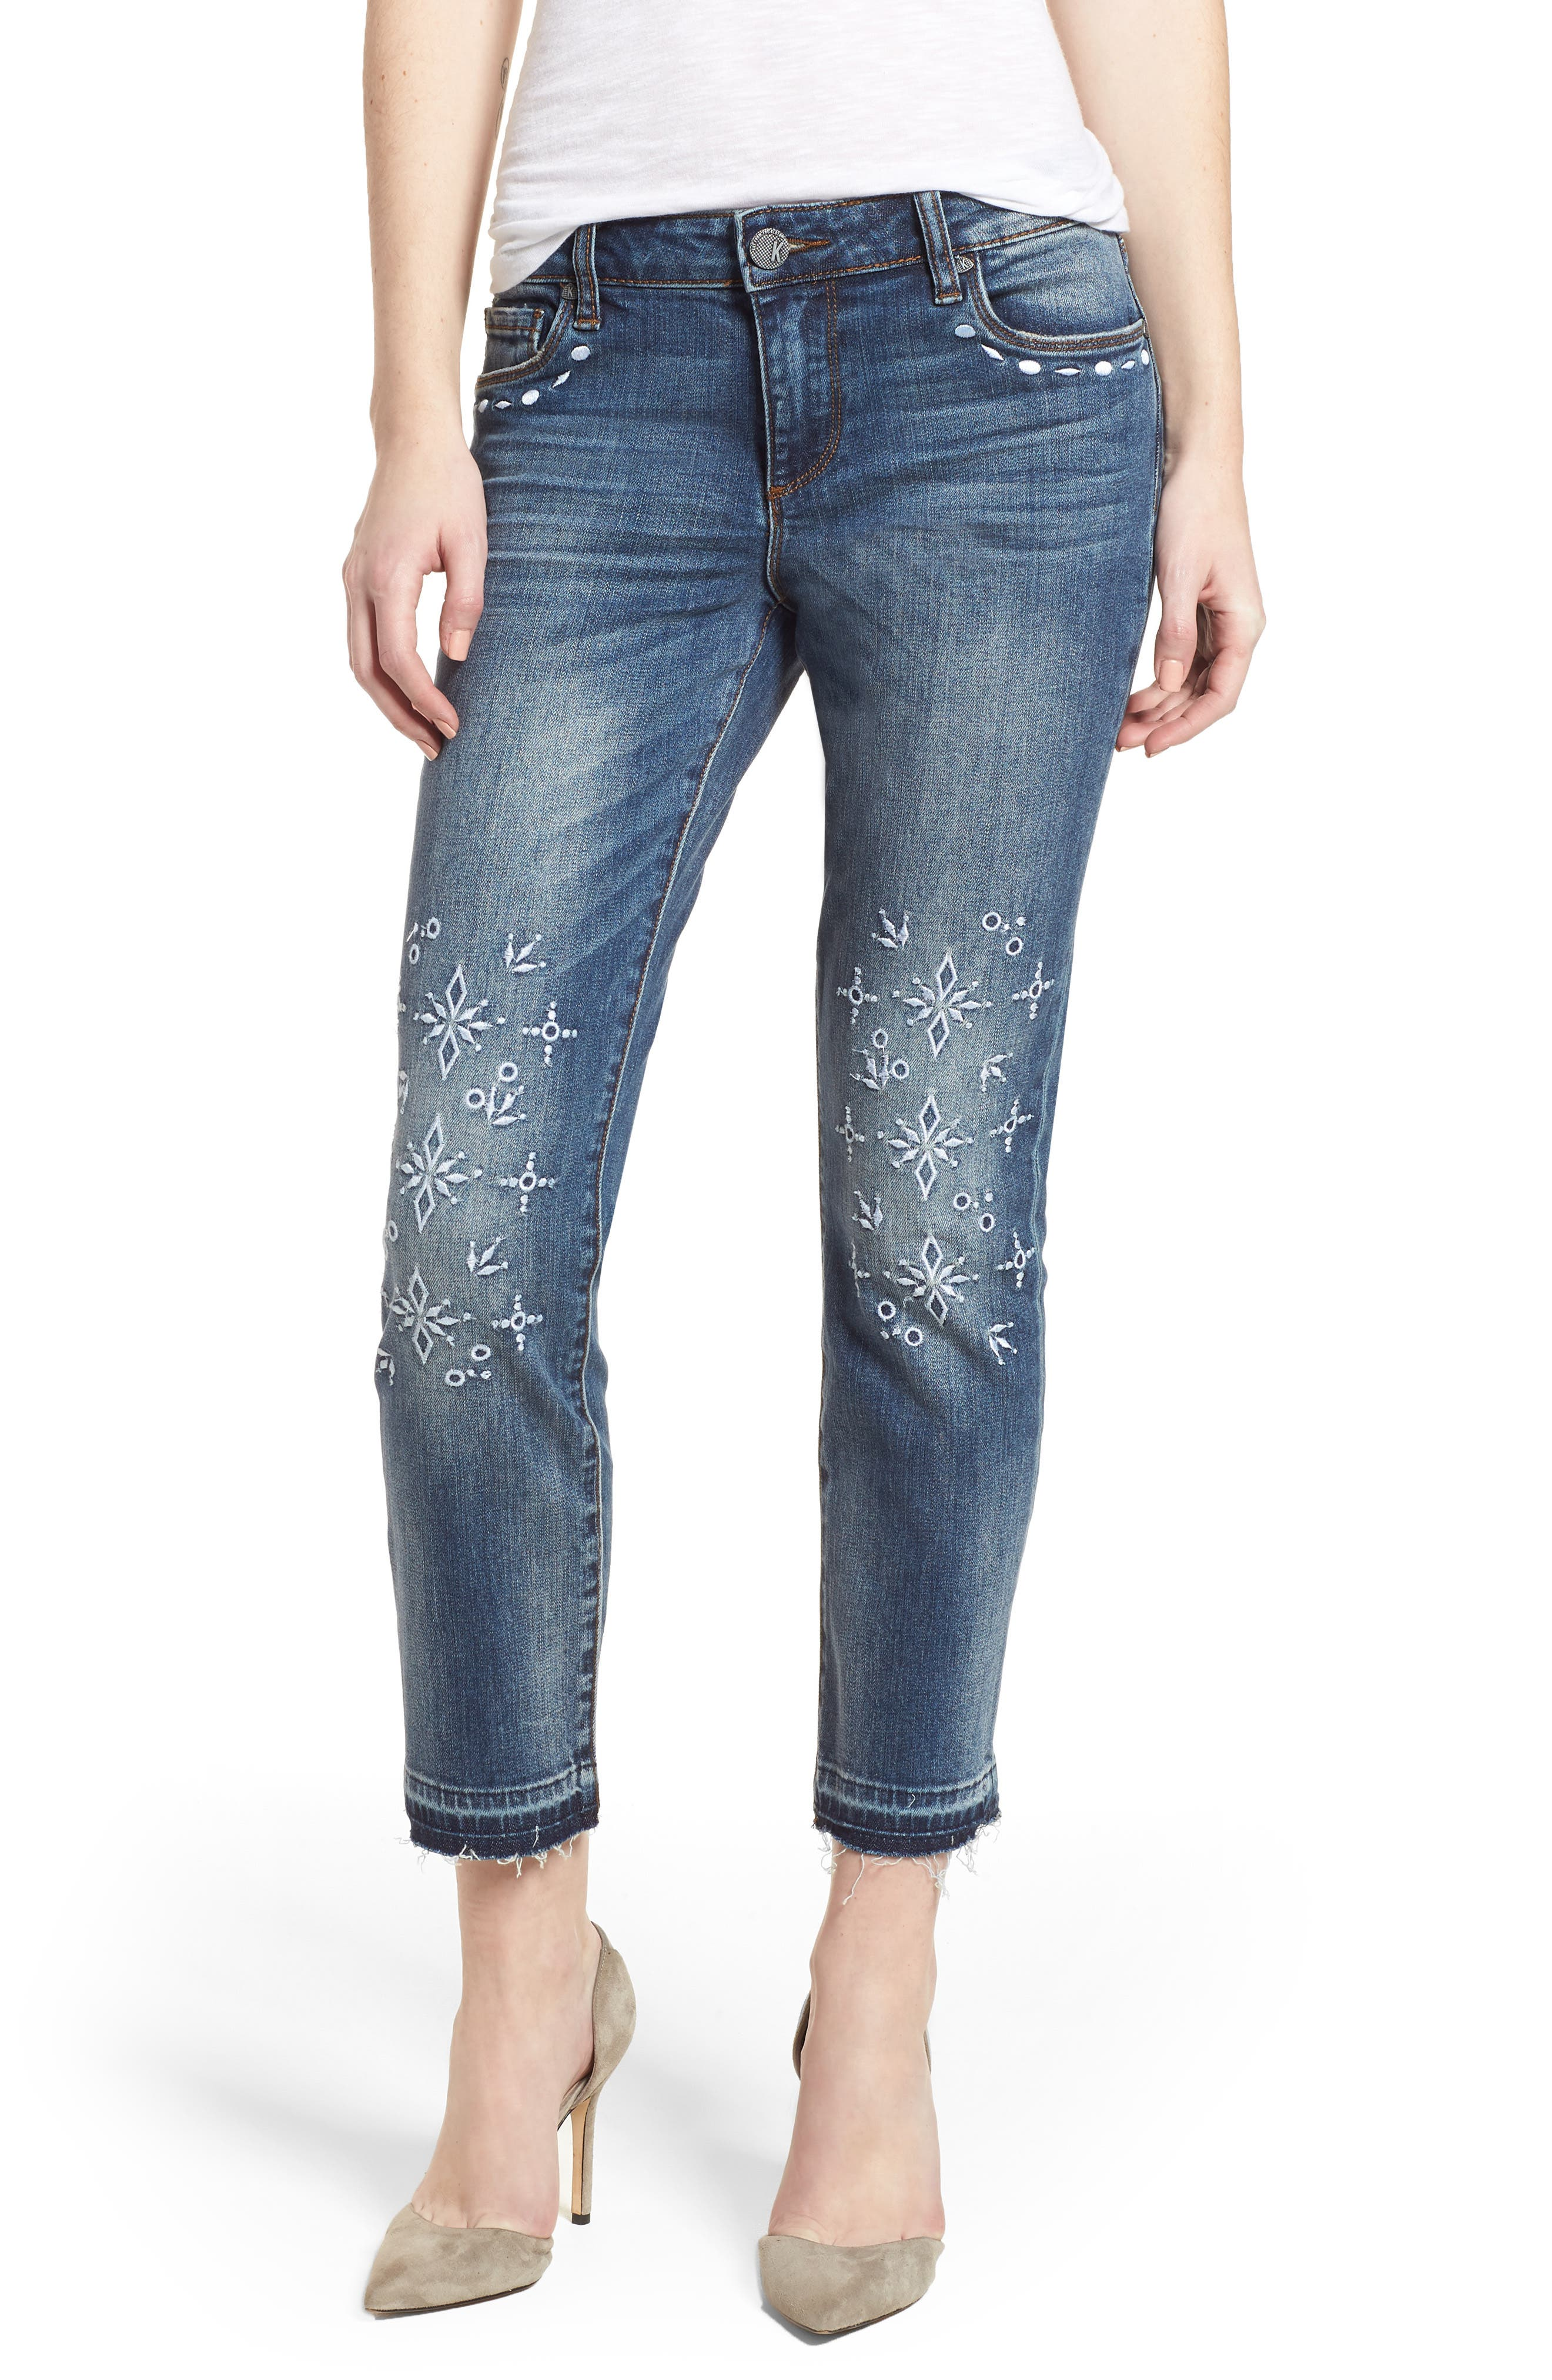 Reese Release Hem Embroidered Jeans,                         Main,                         color, Originated